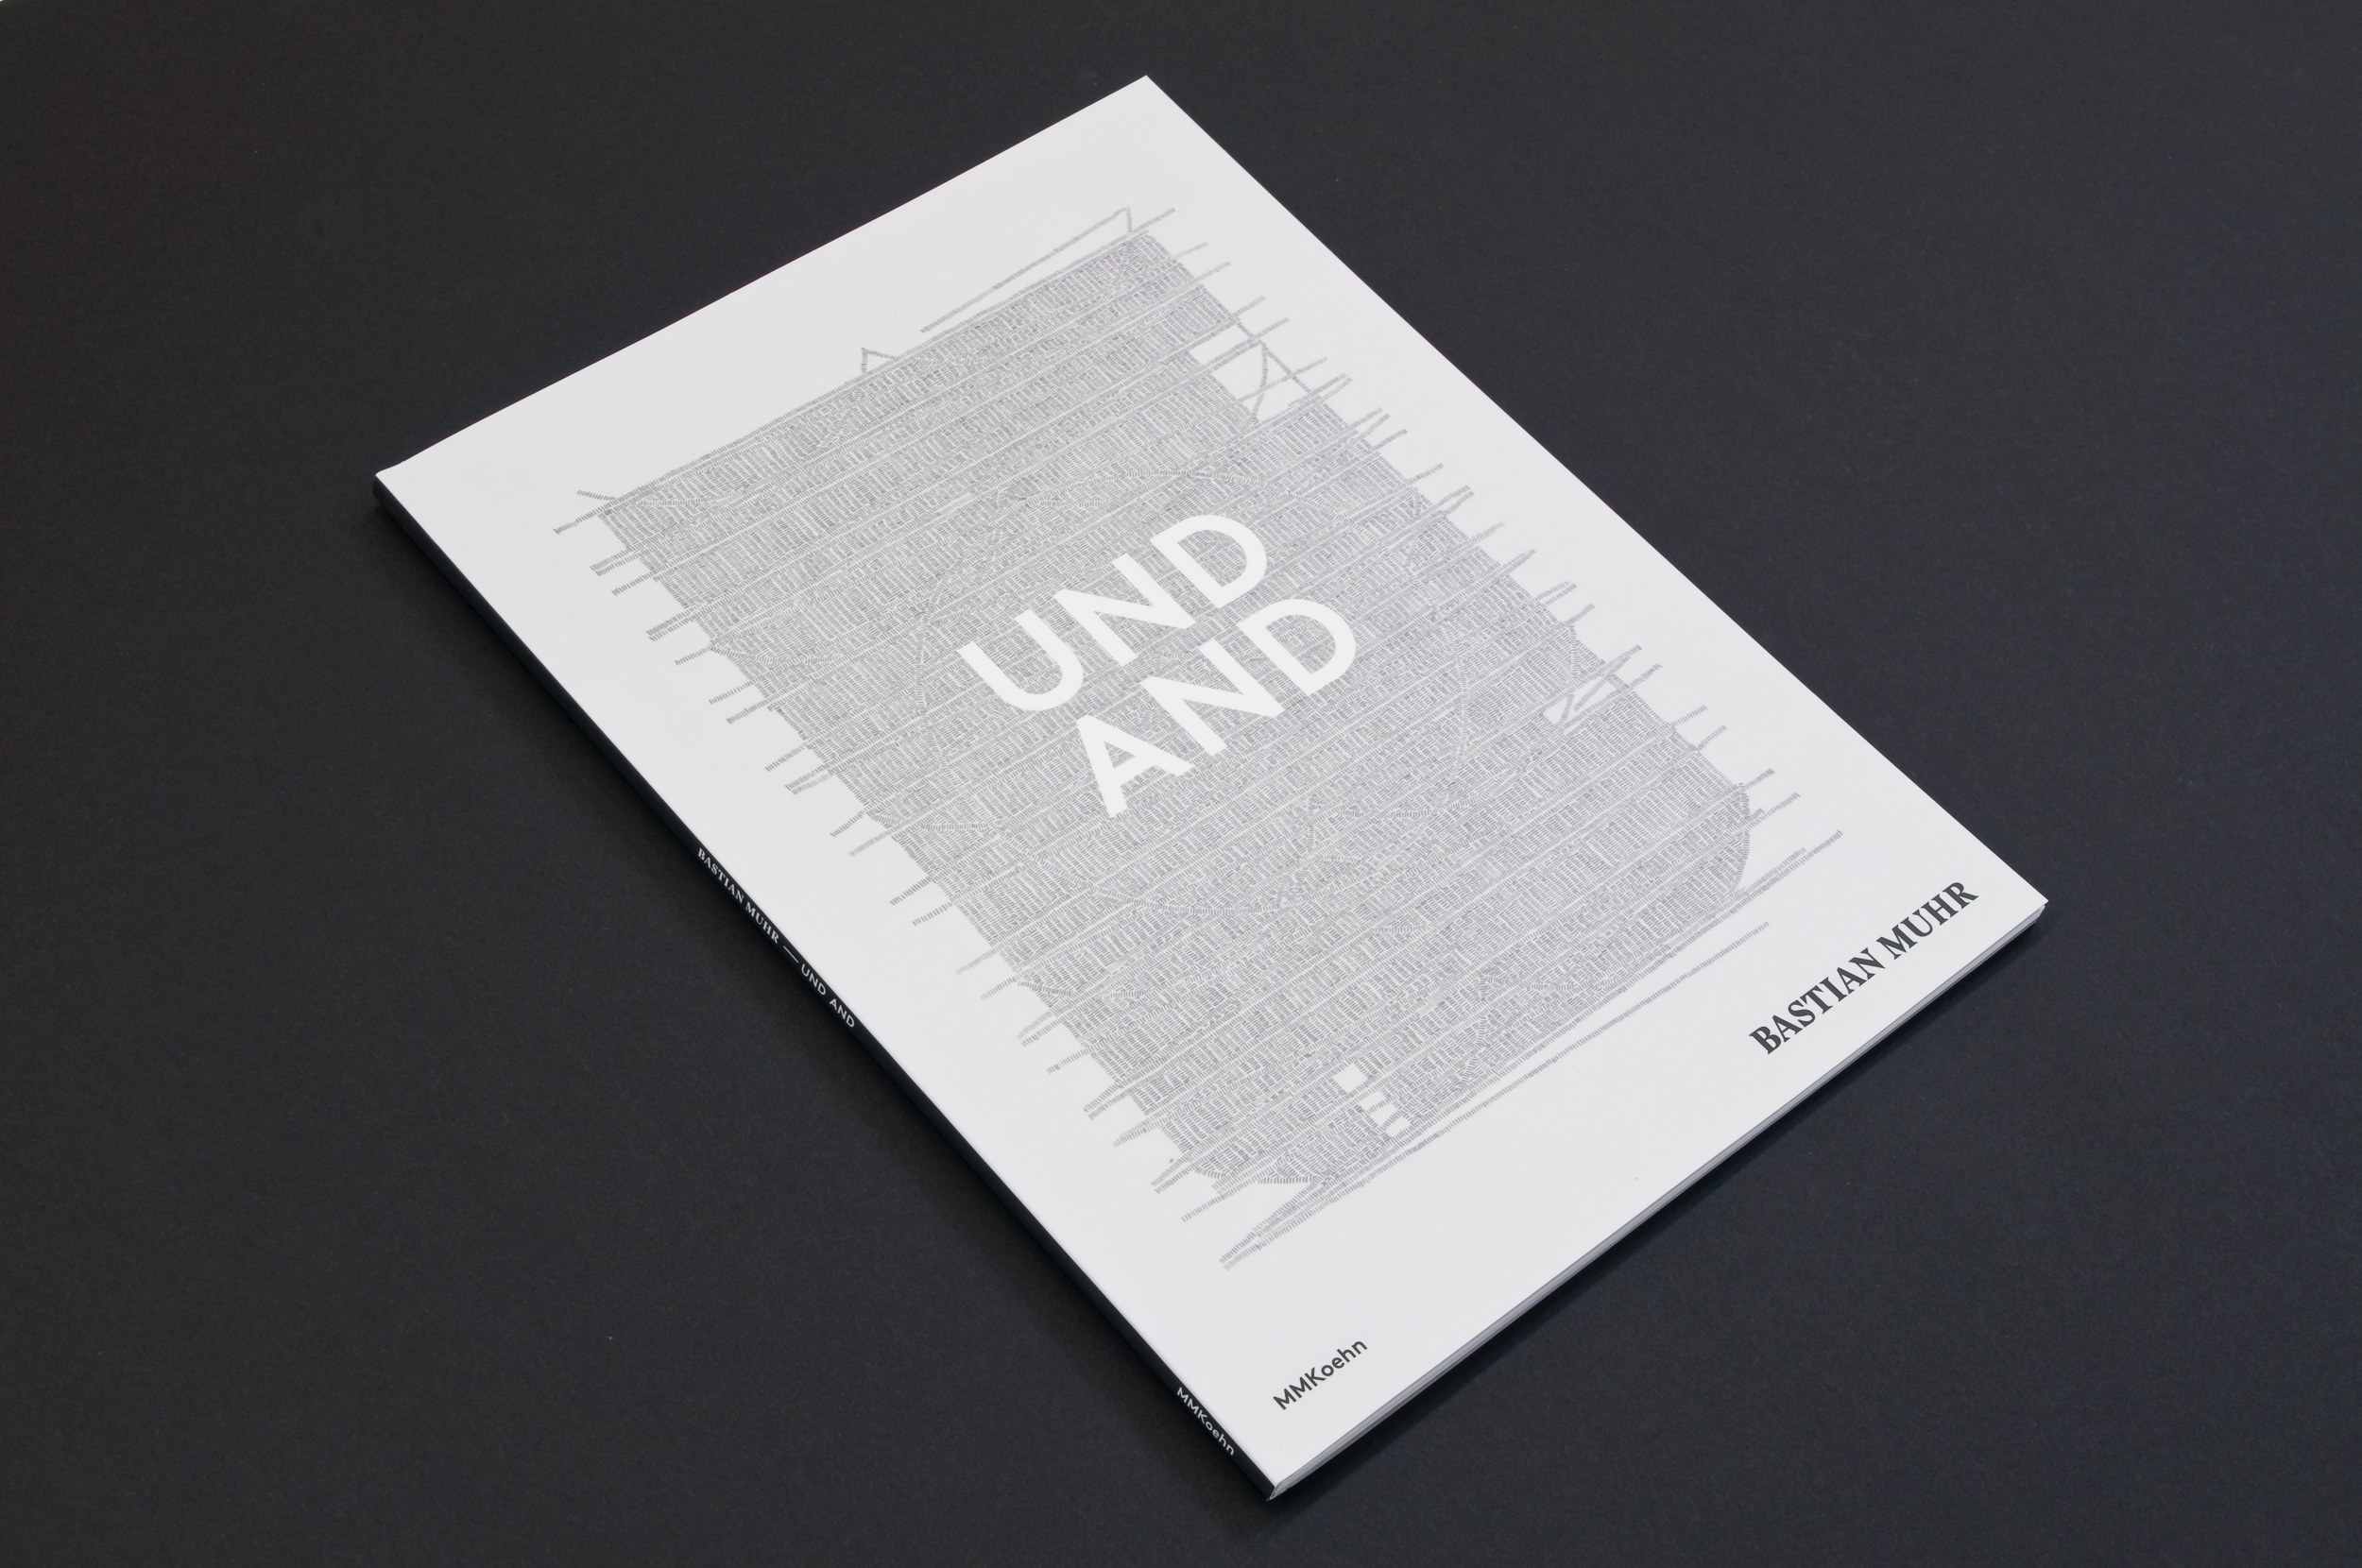 Und/And: Cover